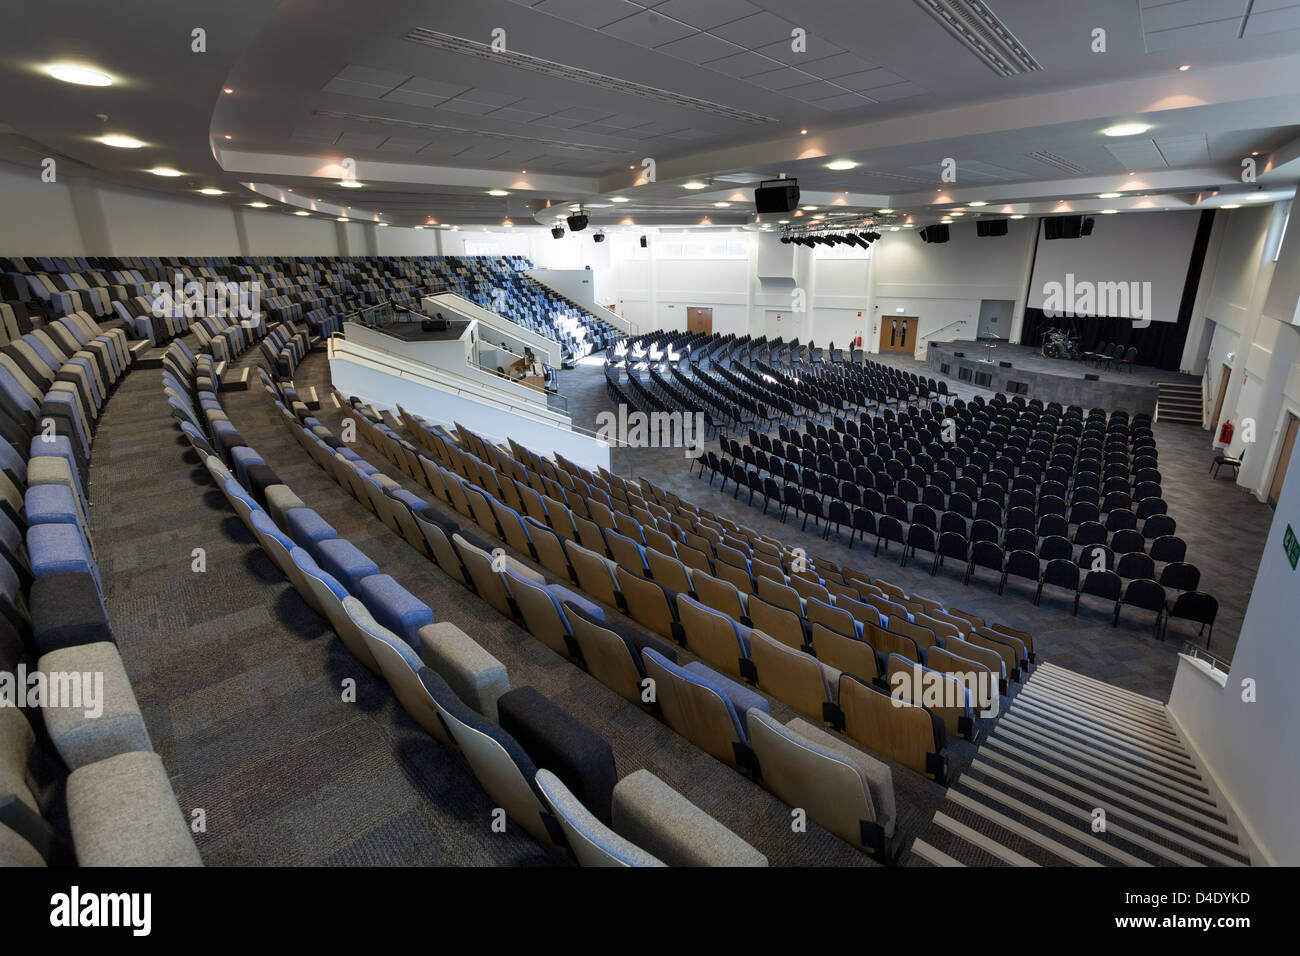 Kings Community Church modern church to hold1200 people with tiered seating. - Stock Image